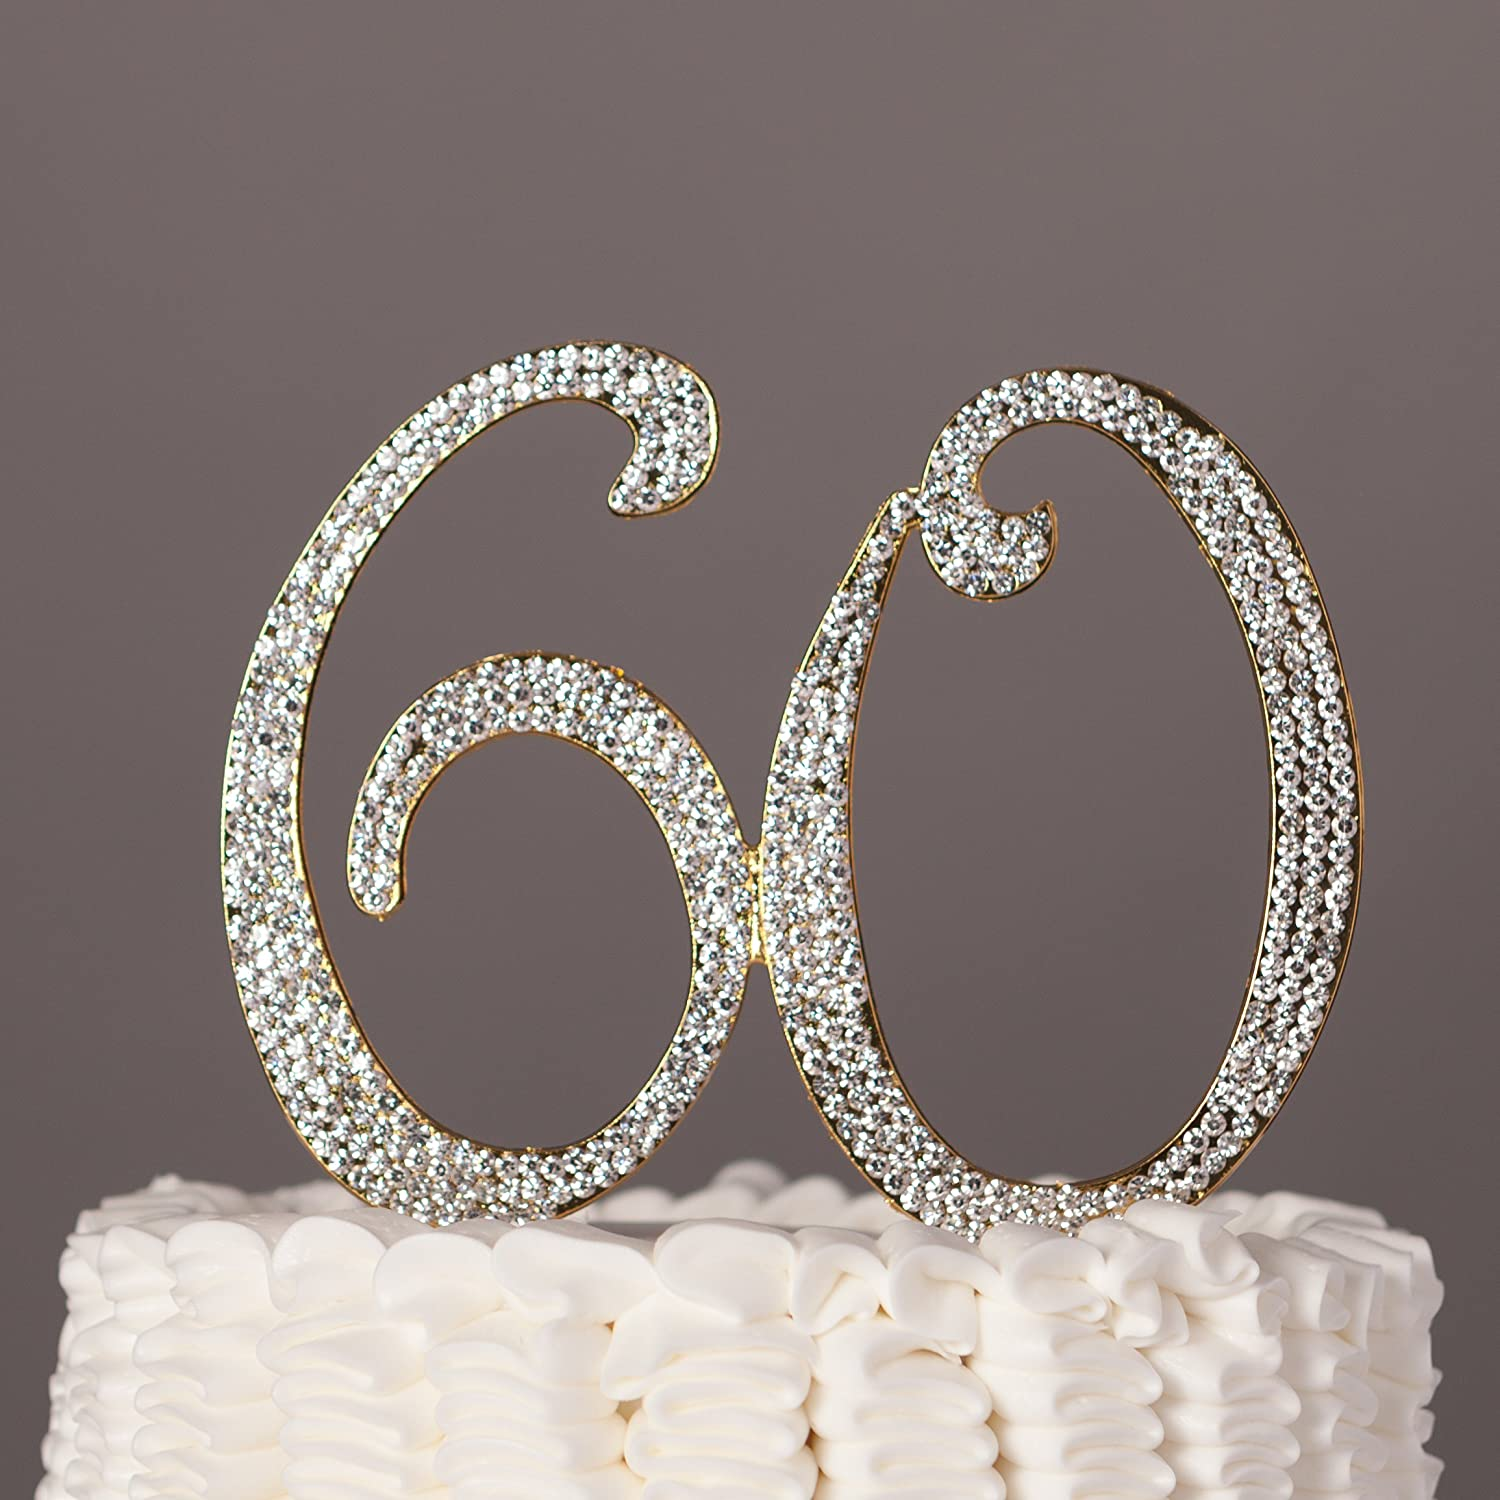 Amazon.com: 60 Cake Topper for 60th Birthday or Anniversary Gold ...